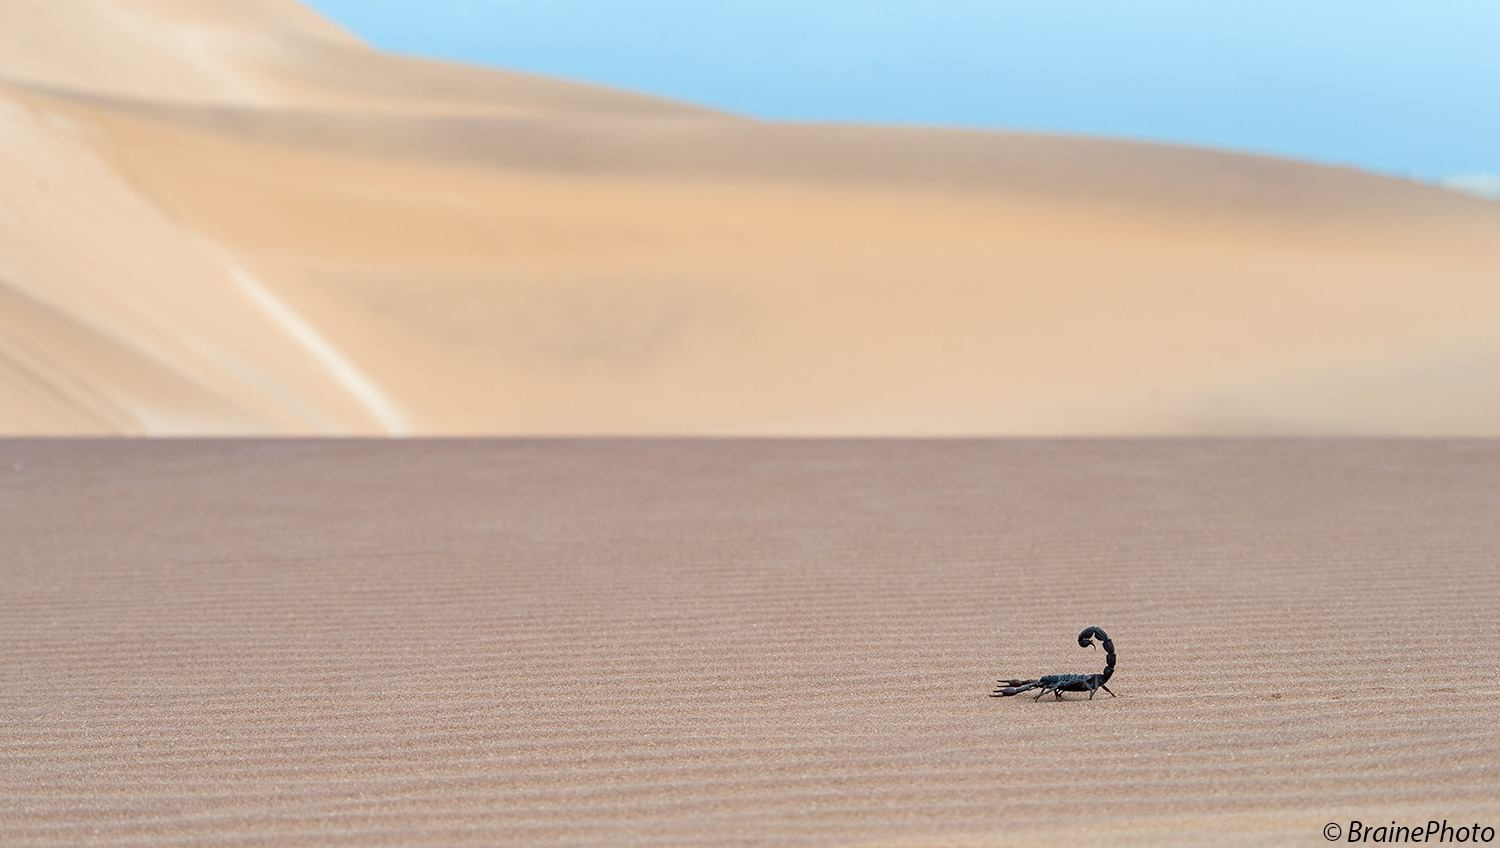 Our Eco Dune Tour (also known as the Living Desert Tour) focuses on the ecology of the dunes. The scorpion (Parabuthus villosis) is one of the main targets on this tour.